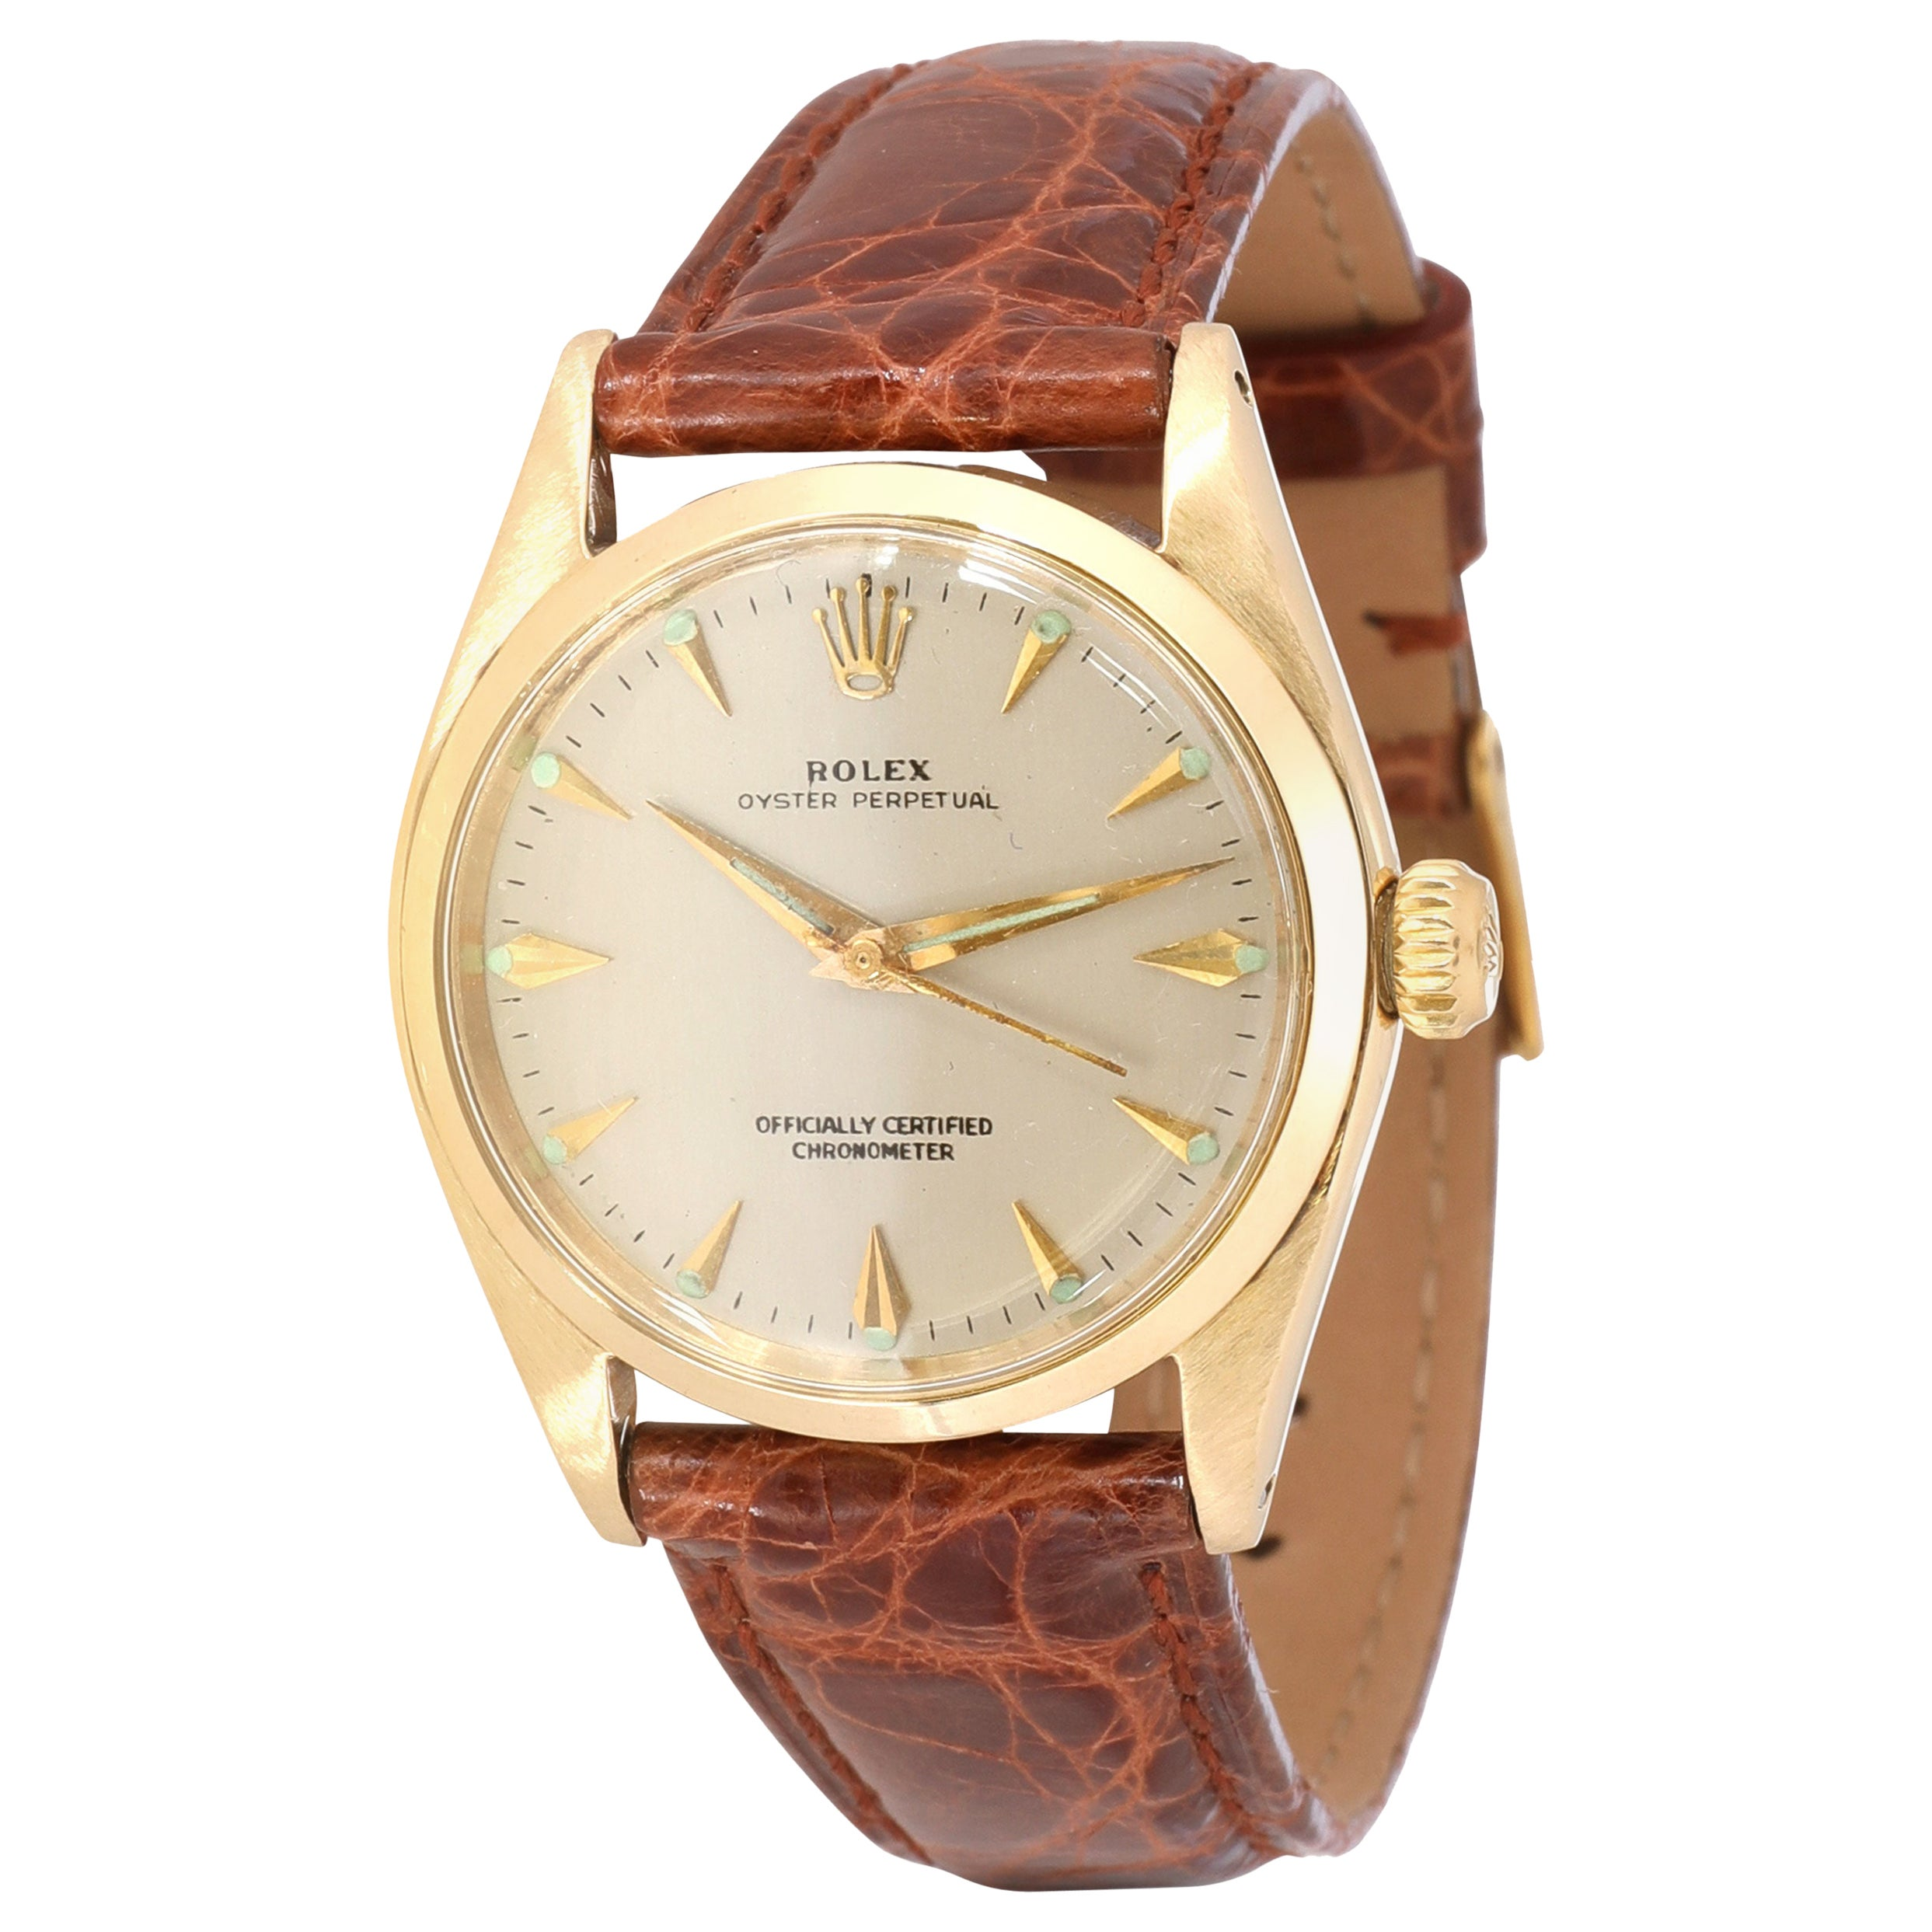 Rolex Oyster Perpetual 6548 Unisex Watch in 14 Karat White Gold/Yellow Gold